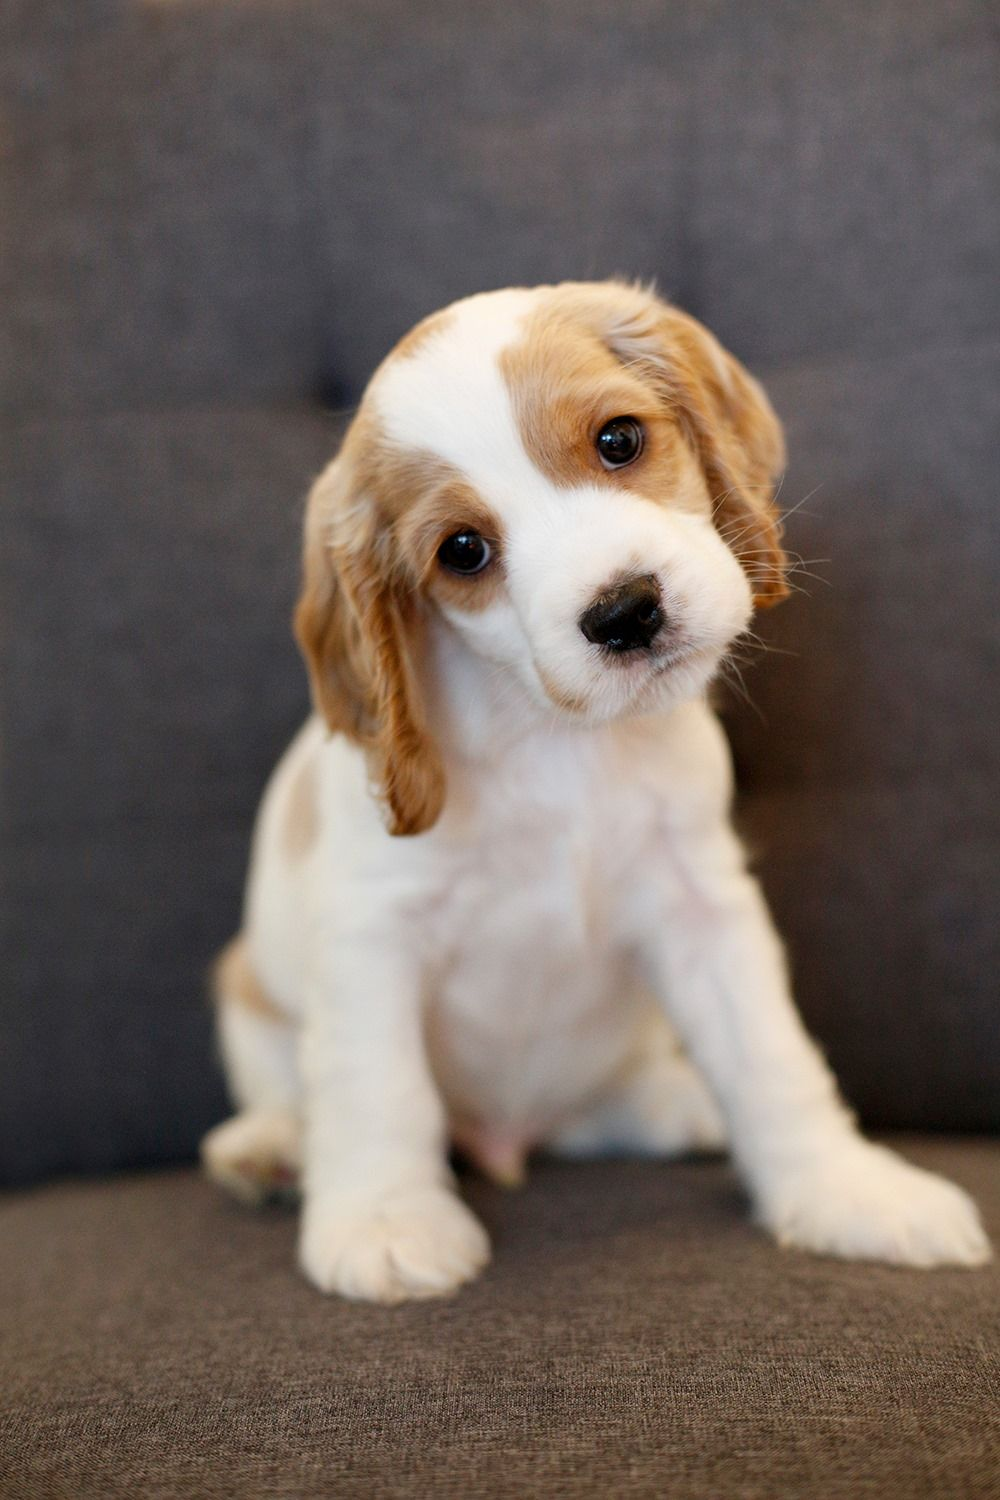 Little Henry Was Born On May 5 2019 Isn T He The Cutest Learn More About Adopti Cocker Spaniel Puppies Rescue Dogs For Adoption Cocker Spaniel